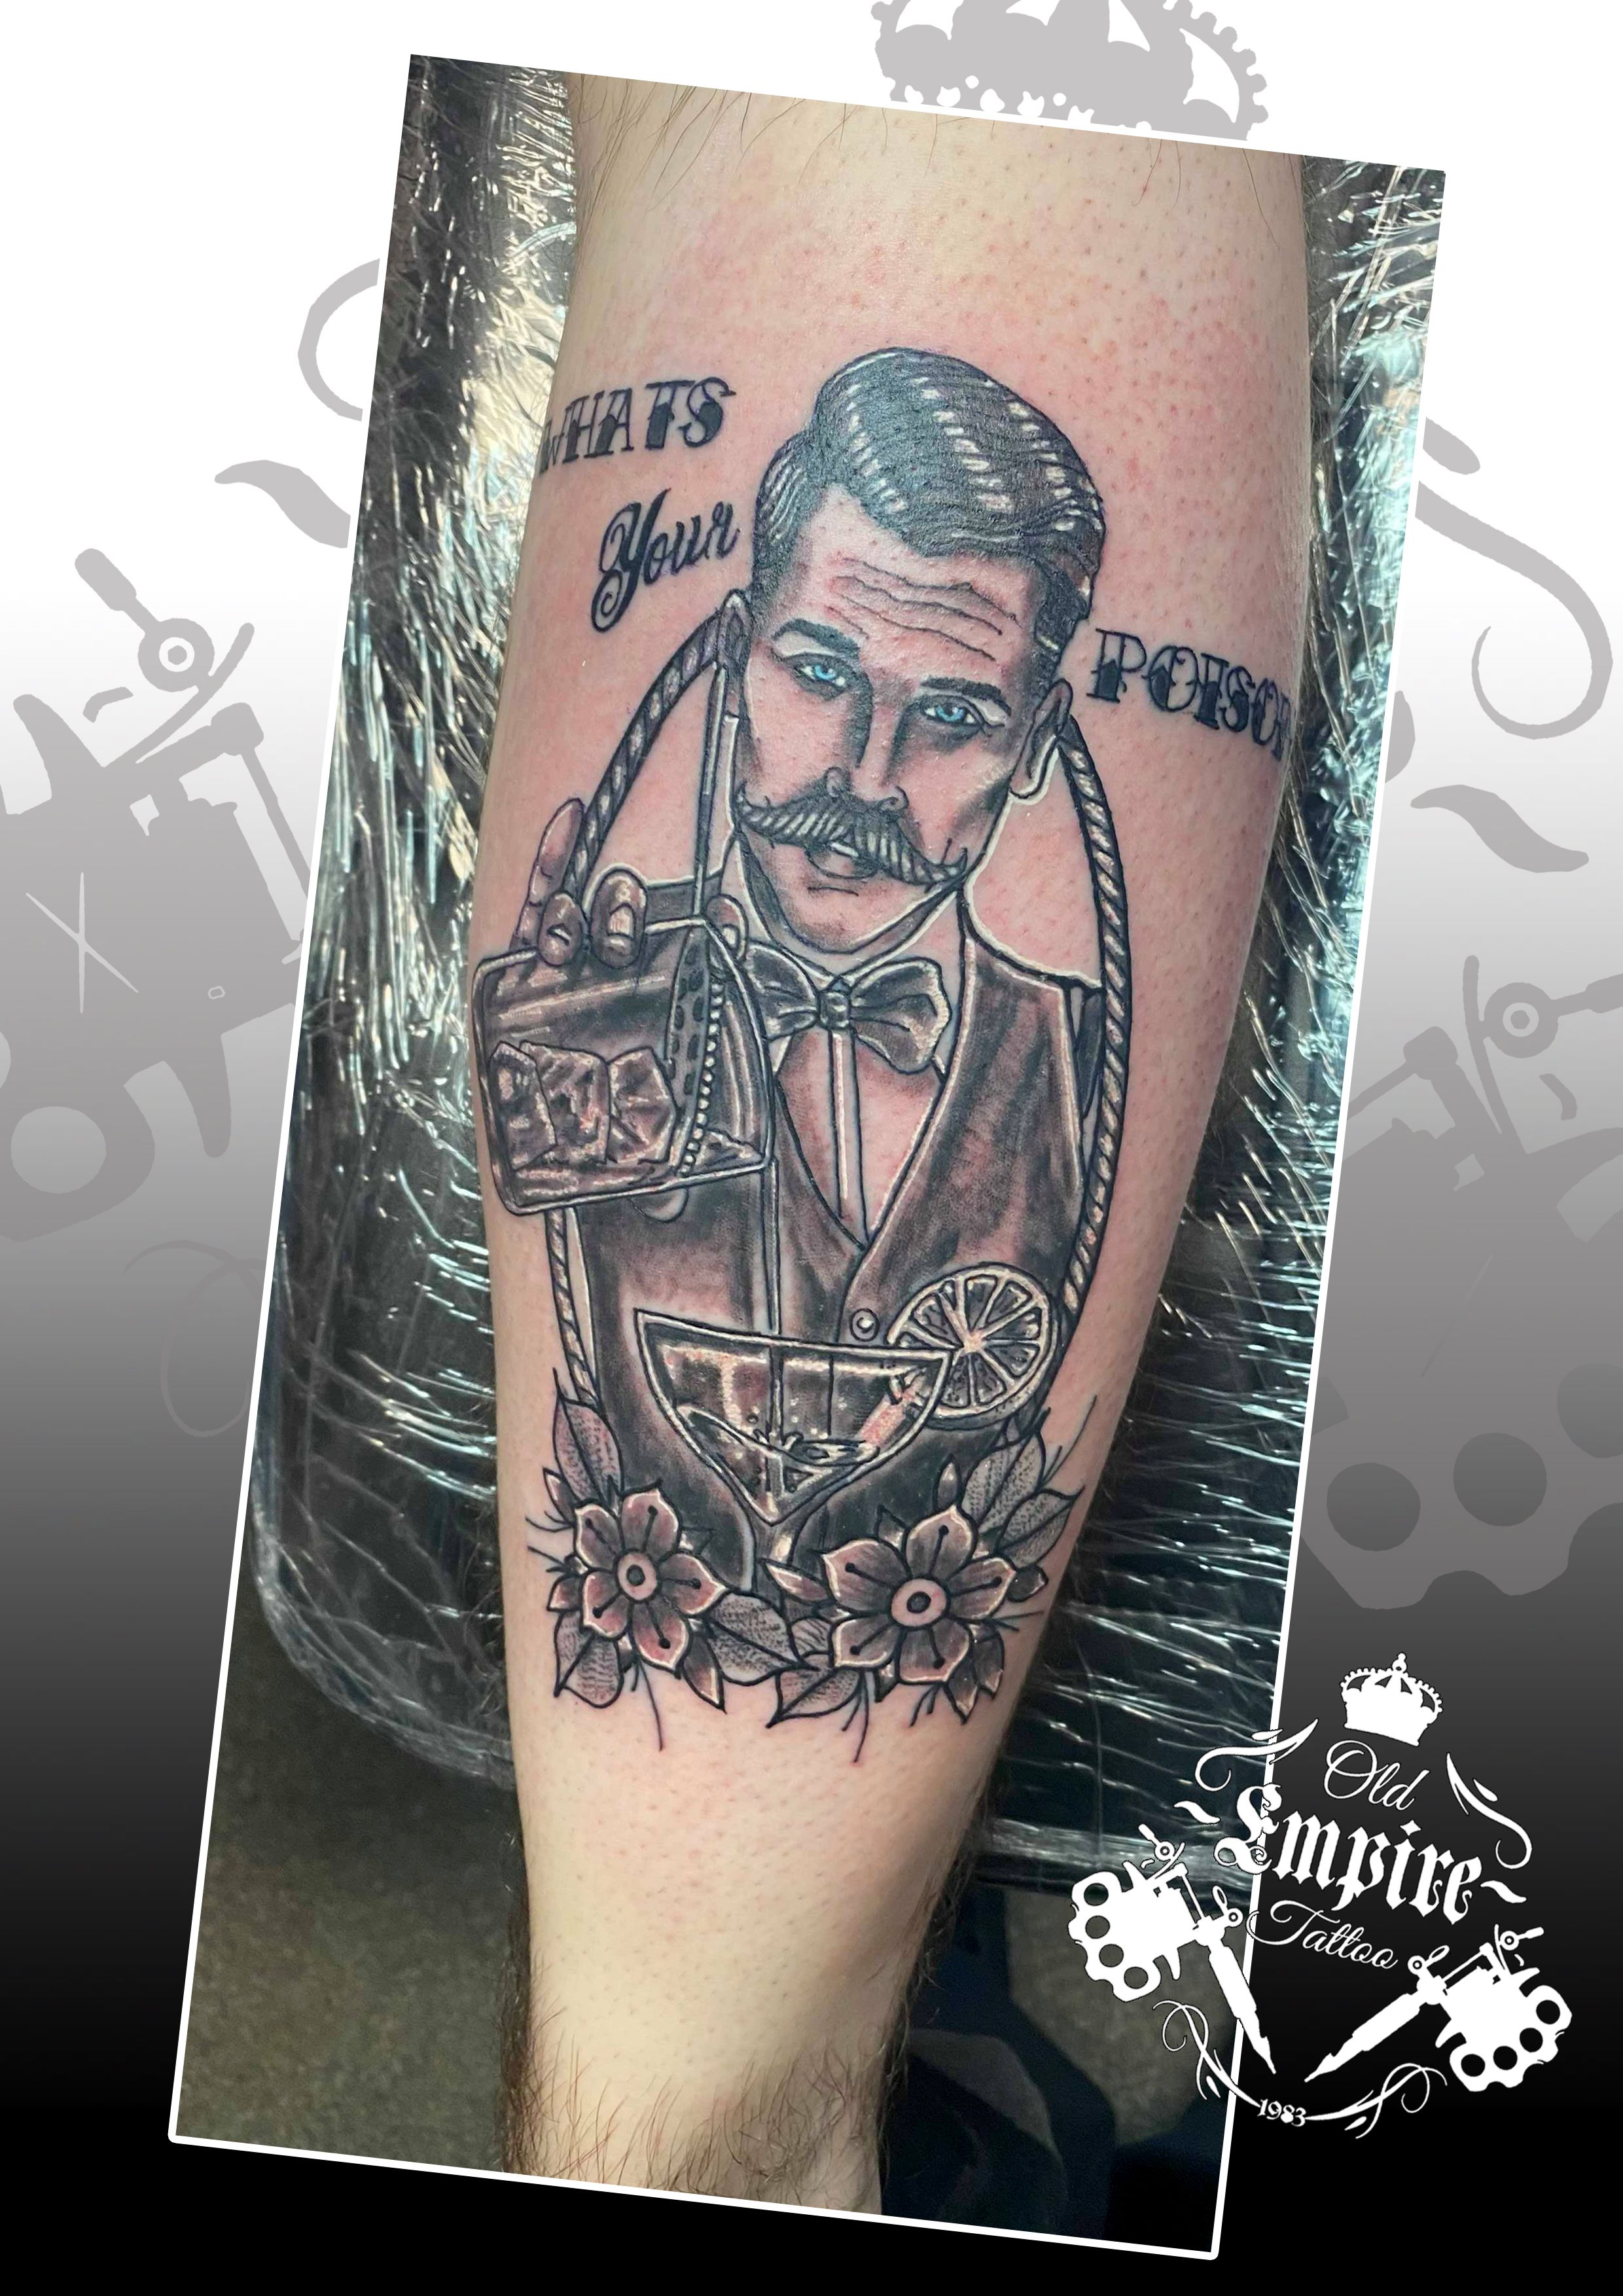 Loved doing this suave #BarManTattoo for a regular client! #WhatsYourPoison #Moustache #Cocktail #Mixer #BlueEyes #Ink #GuysWithTattoos #OldEmpireTattoo